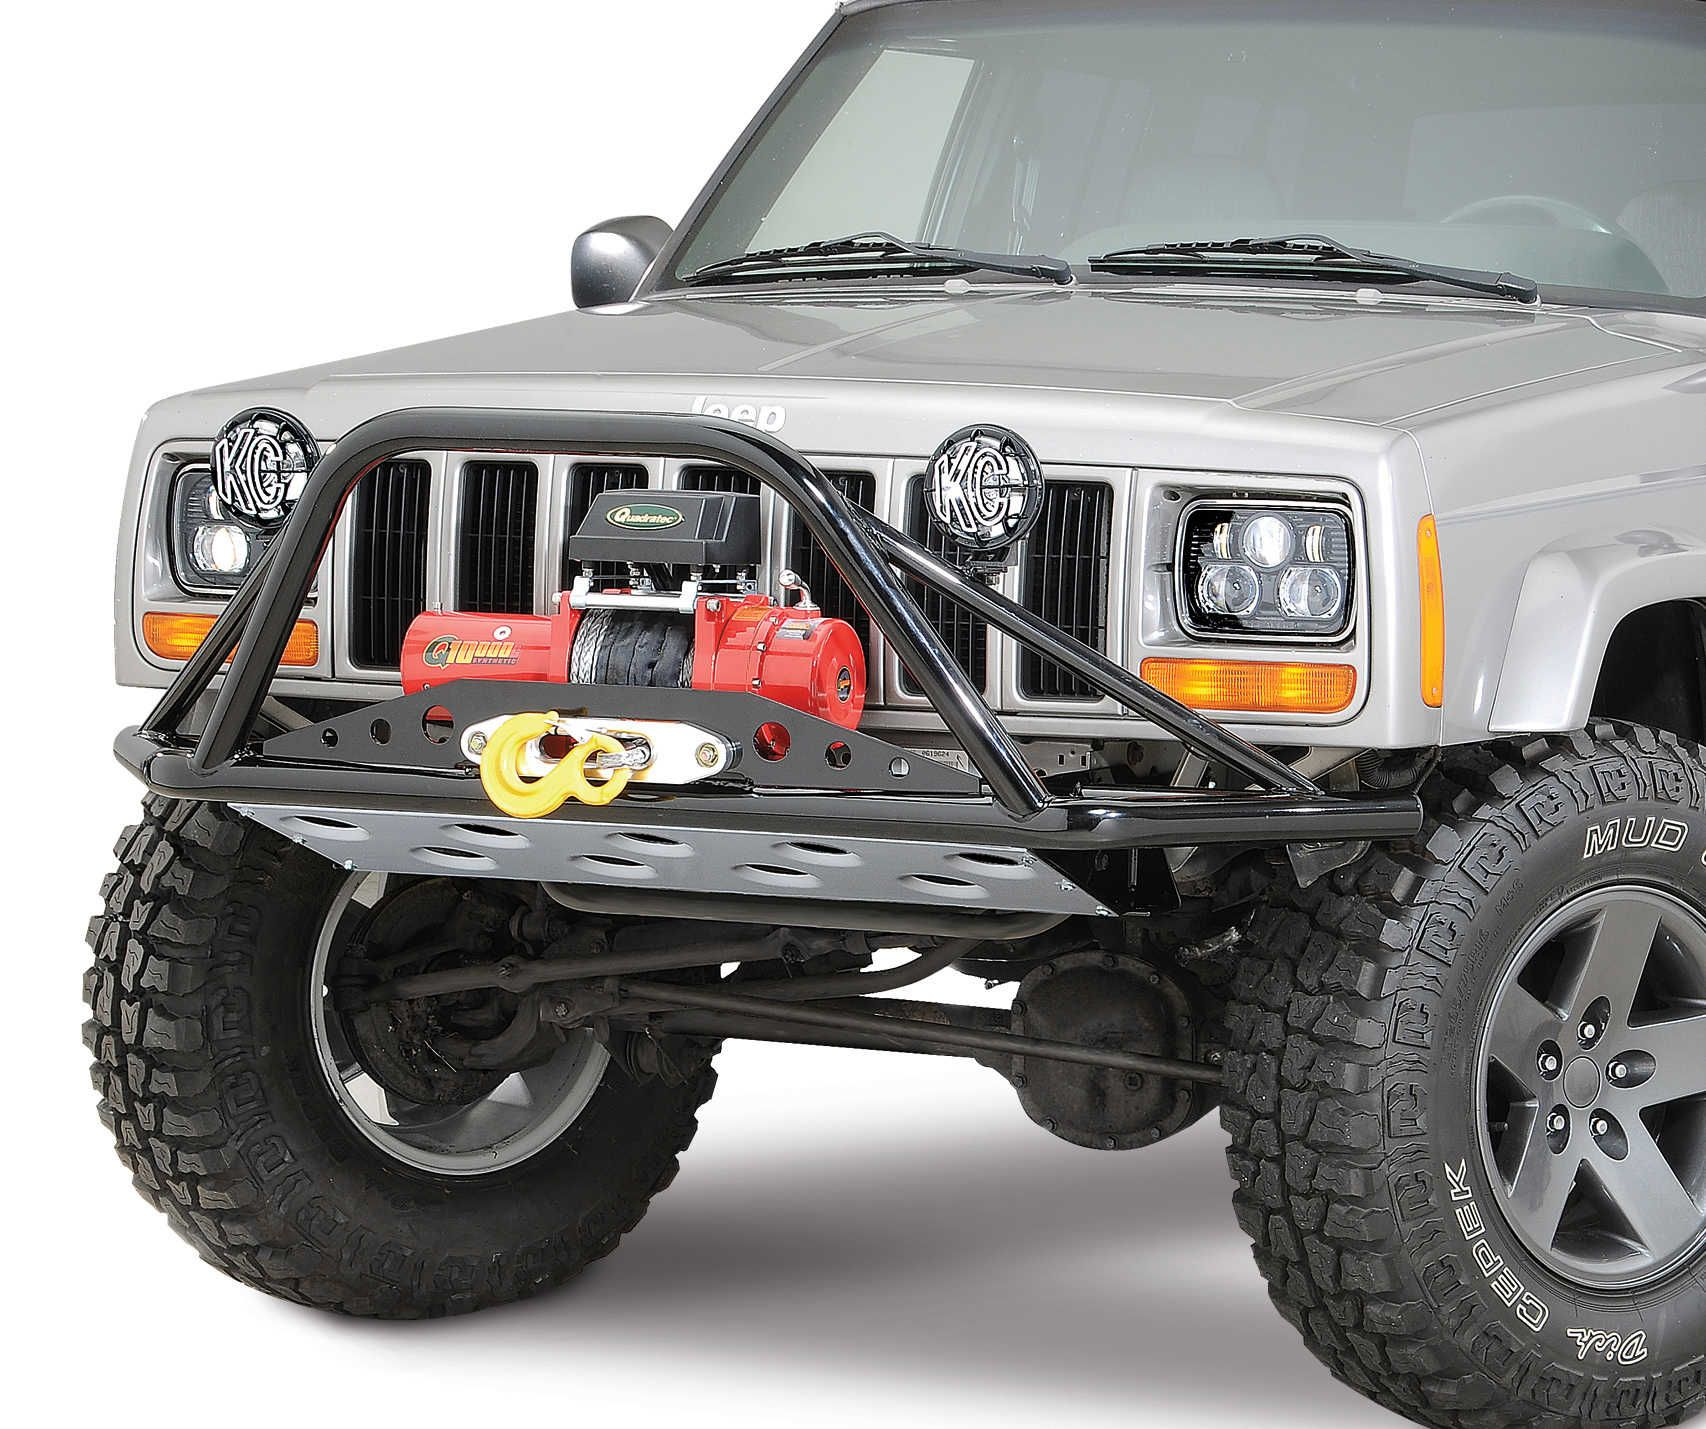 Rusty S Offroad Products Rusty S Offroad Products Pre Runner Winch Bumper For 84 01 Jeep Cherokee Xj Quadratec Jeep Bumpers Winch Bumpers Jeep Cherokee Xj